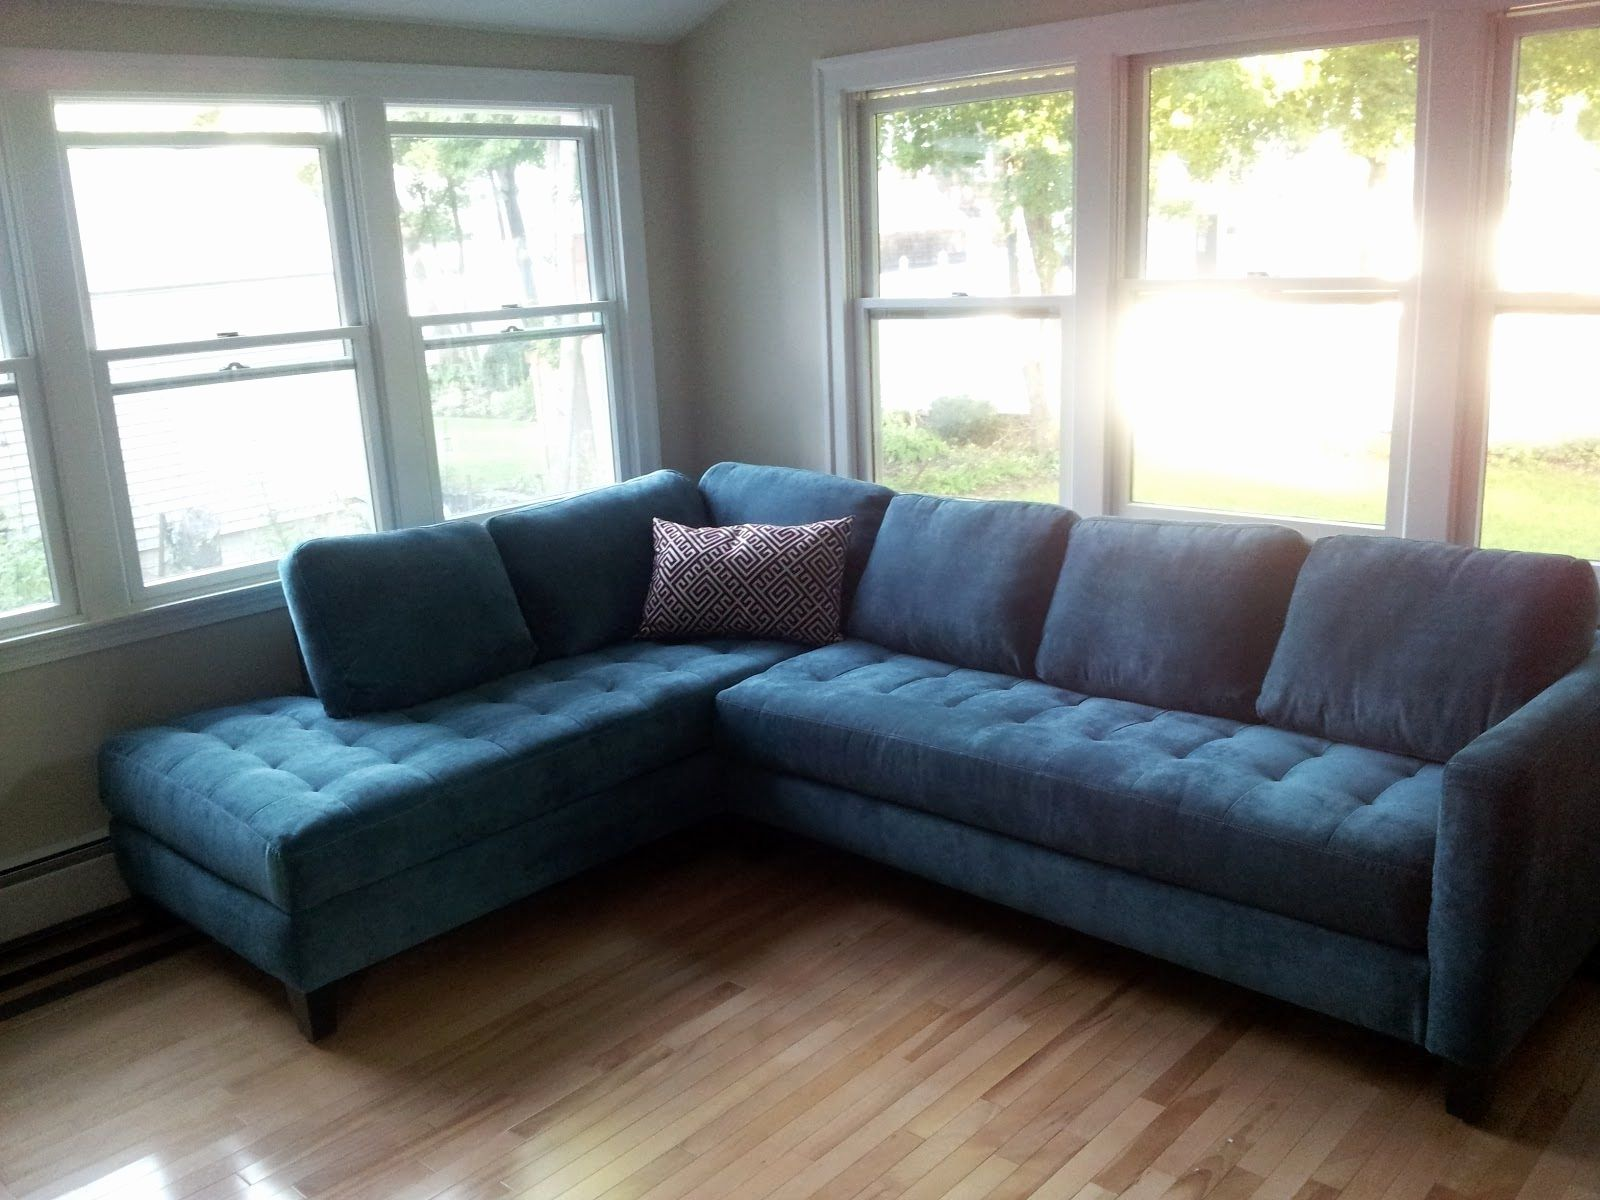 Fresh Navy Blue Sectional Sofa Pictures Navy Blue Sectional Sofa Best Of Blue Sleeper Sofa Boo Blue Sofas Living Room Sectional Sofa With Chaise Sectional Sofa